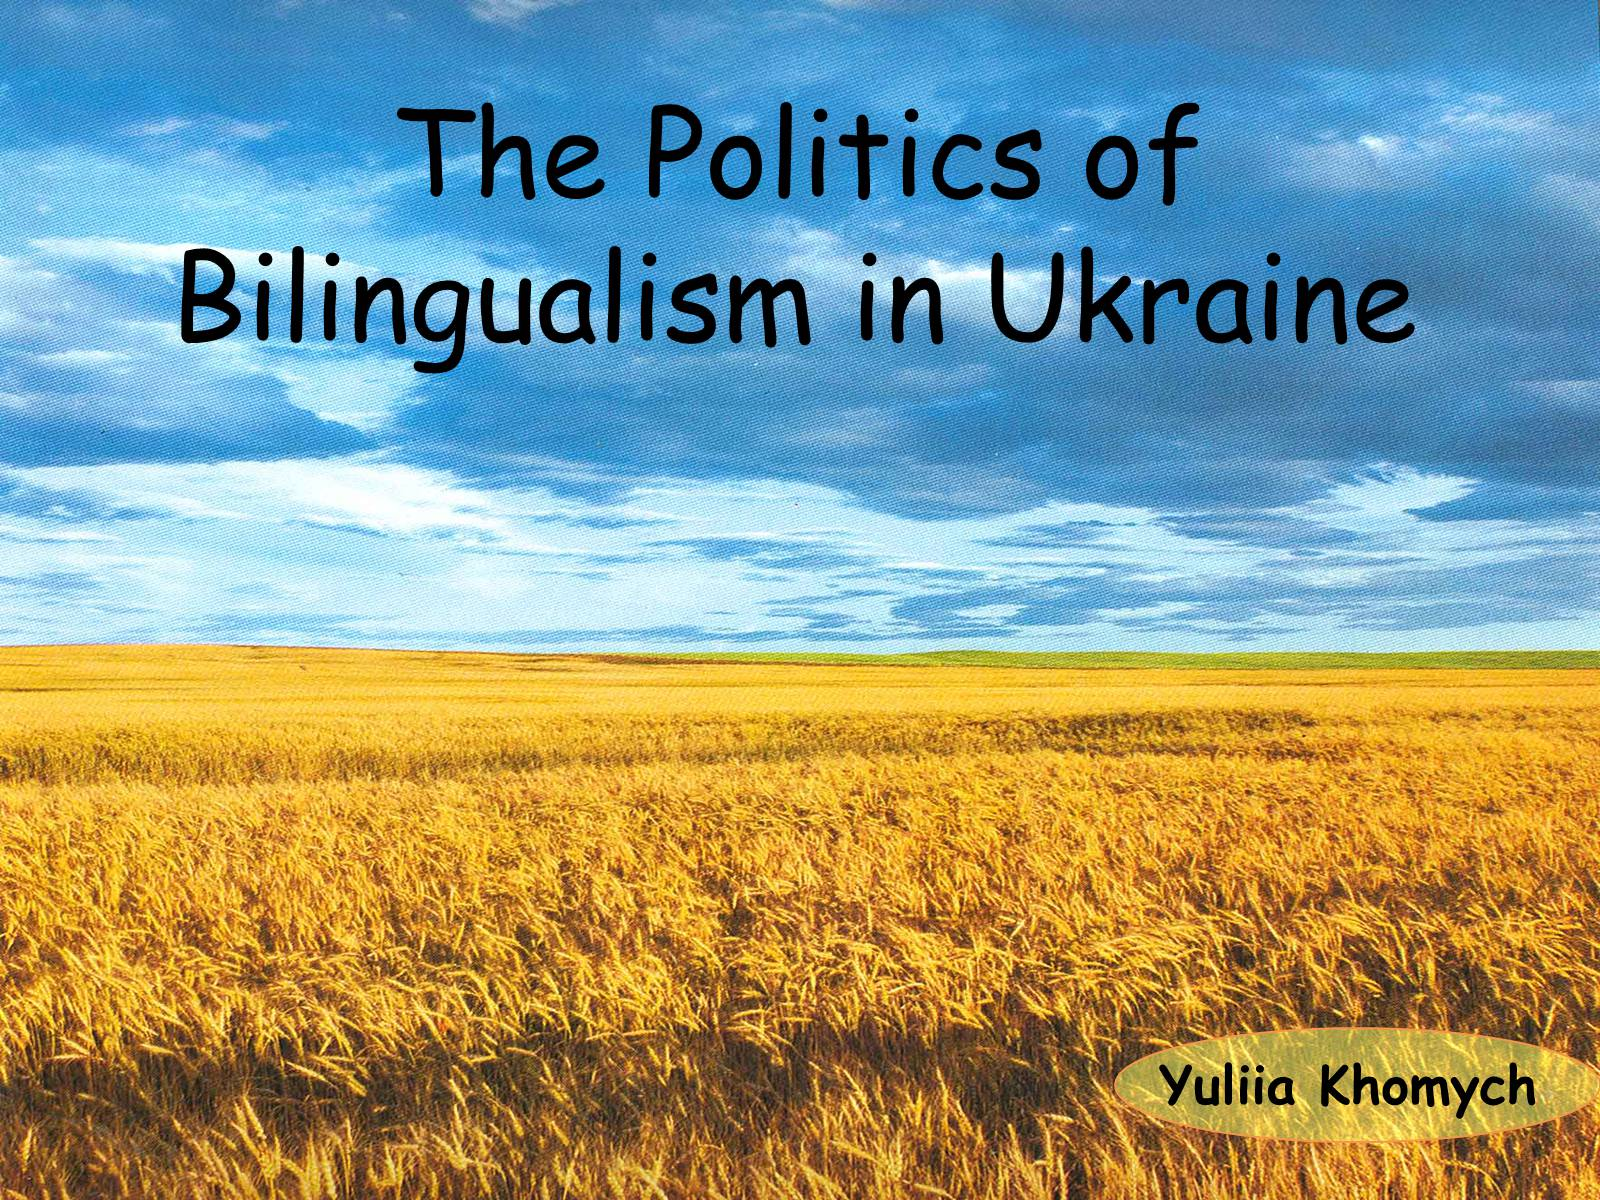 Презентація на тему «The Politics of Bilingualism in Ukraine»